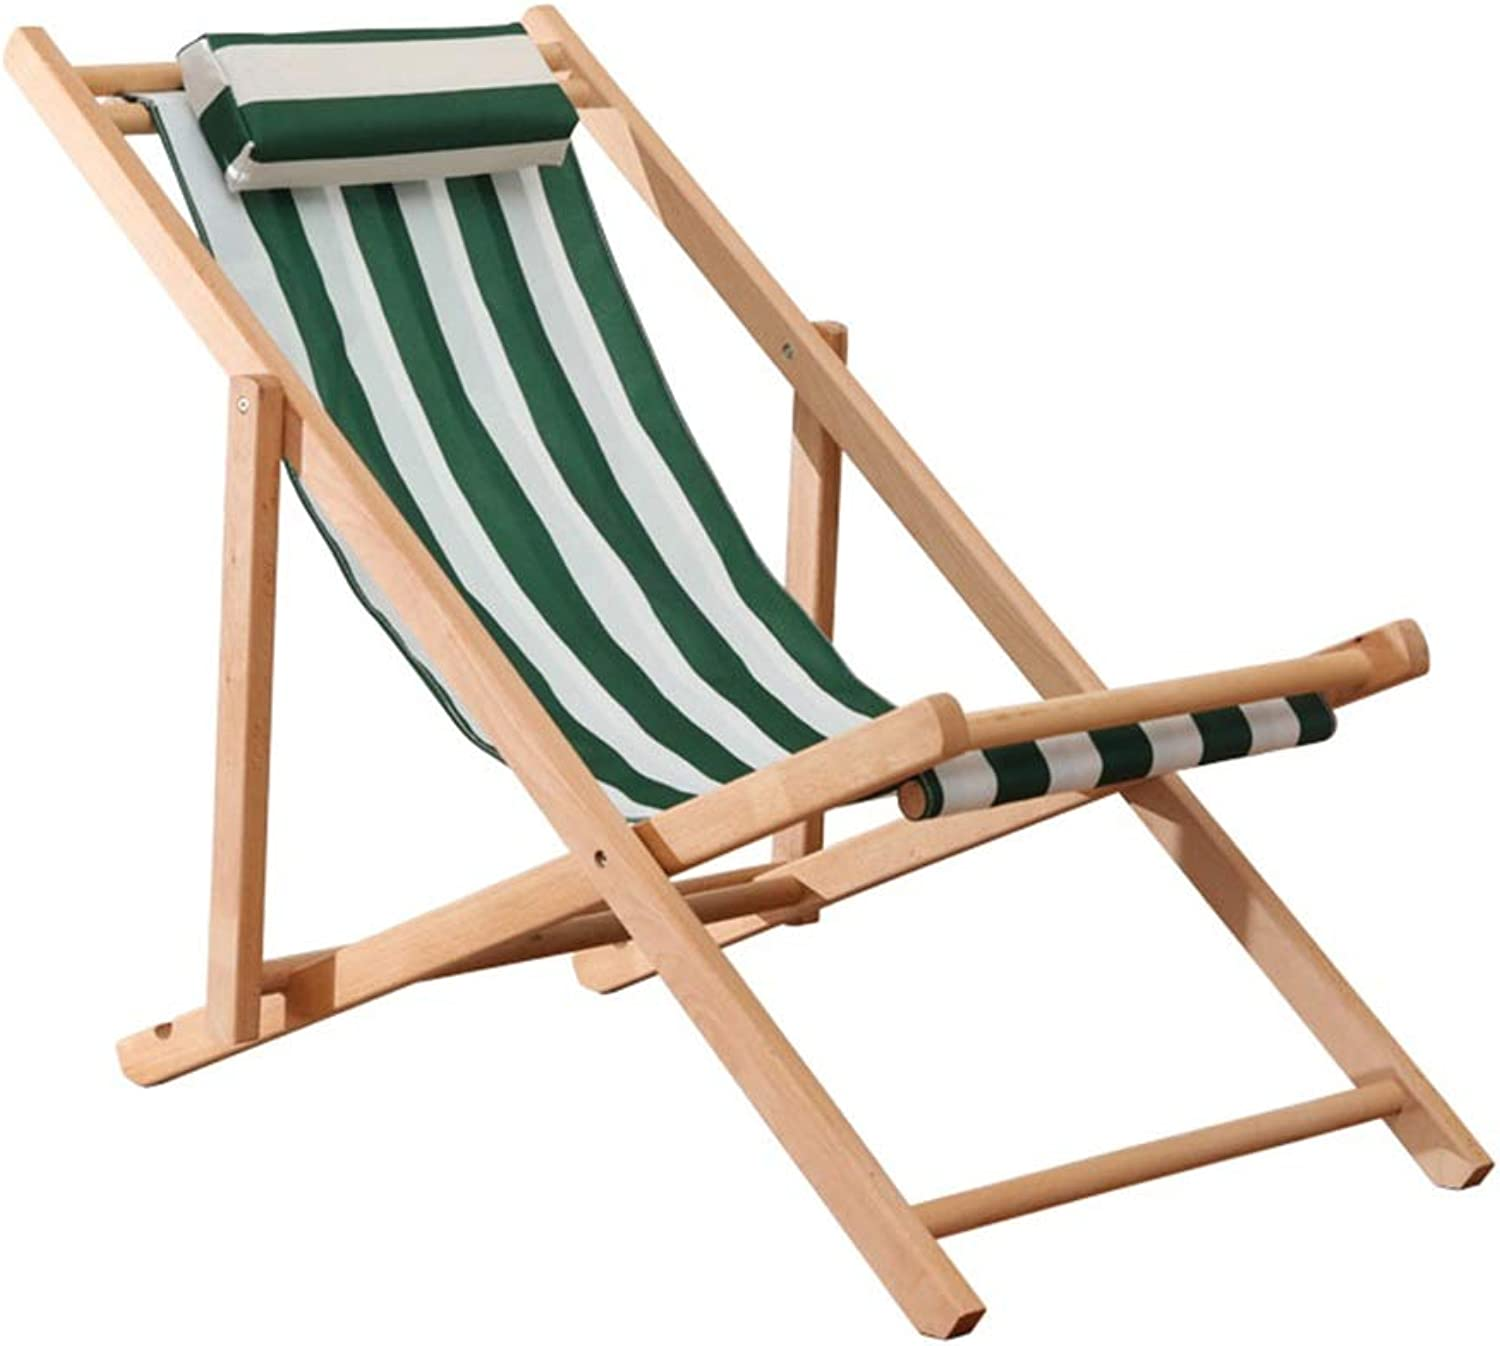 Lounge Chairs Wooden Folding Lazy Camping Deck Chair Easy to Wash and Wash Office Balcony Bedroom Green + White, Bearing 100kg